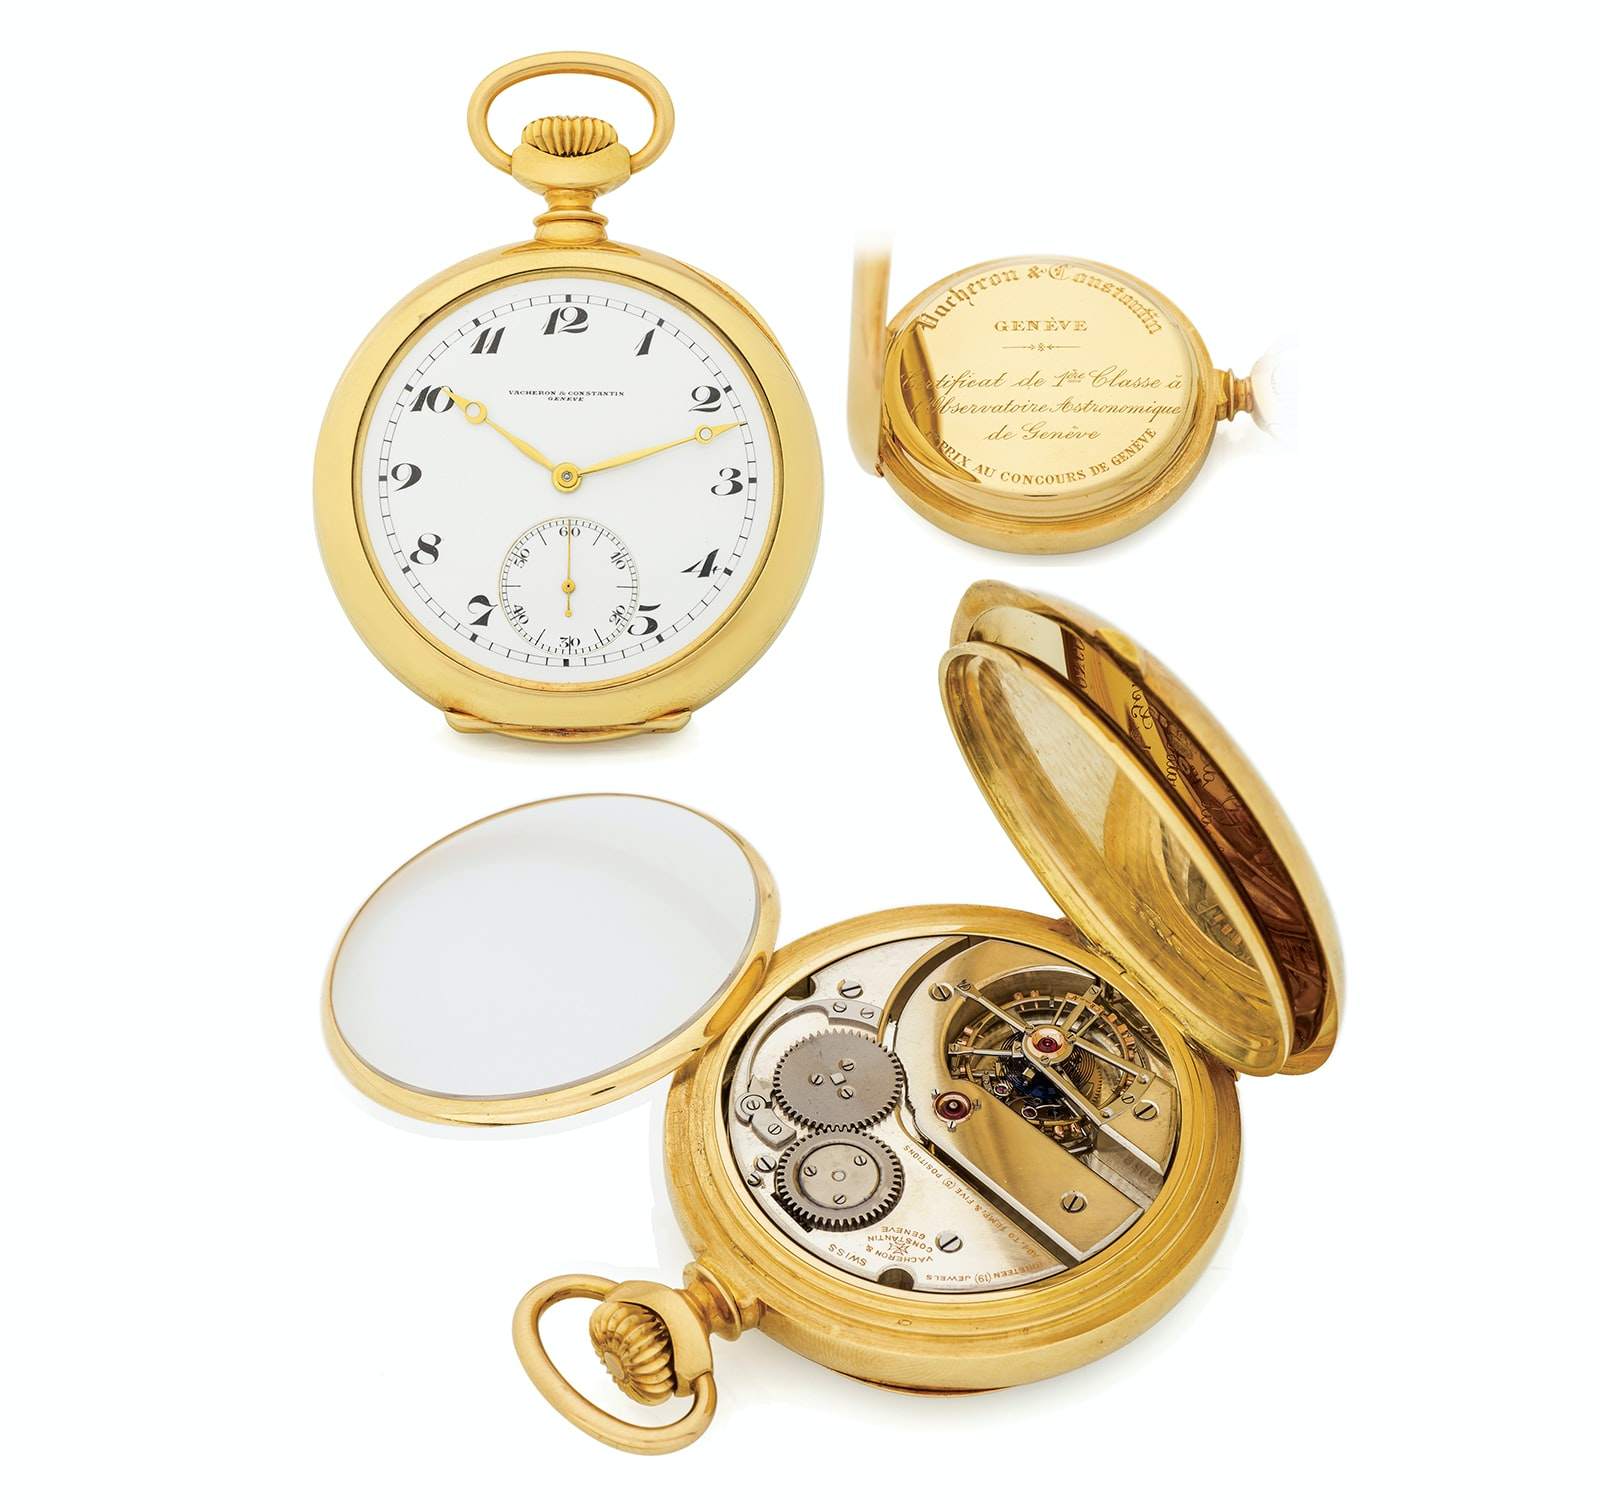 Vacheron Observatory Pocket Tourbillon  Seven Pocket Watches That Will Make You Forget Wristwatches (And Wonder Why They've Gotten So Pricey) From The Antiquorum 'Important Modern & Vintage Timepieces' Auction Seven Pocket Watches That Will Make You Forget Wristwatches (And Wonder Why They've Gotten So Pricey) From The Antiquorum 'Important Modern & Vintage Timepieces' Auction b2